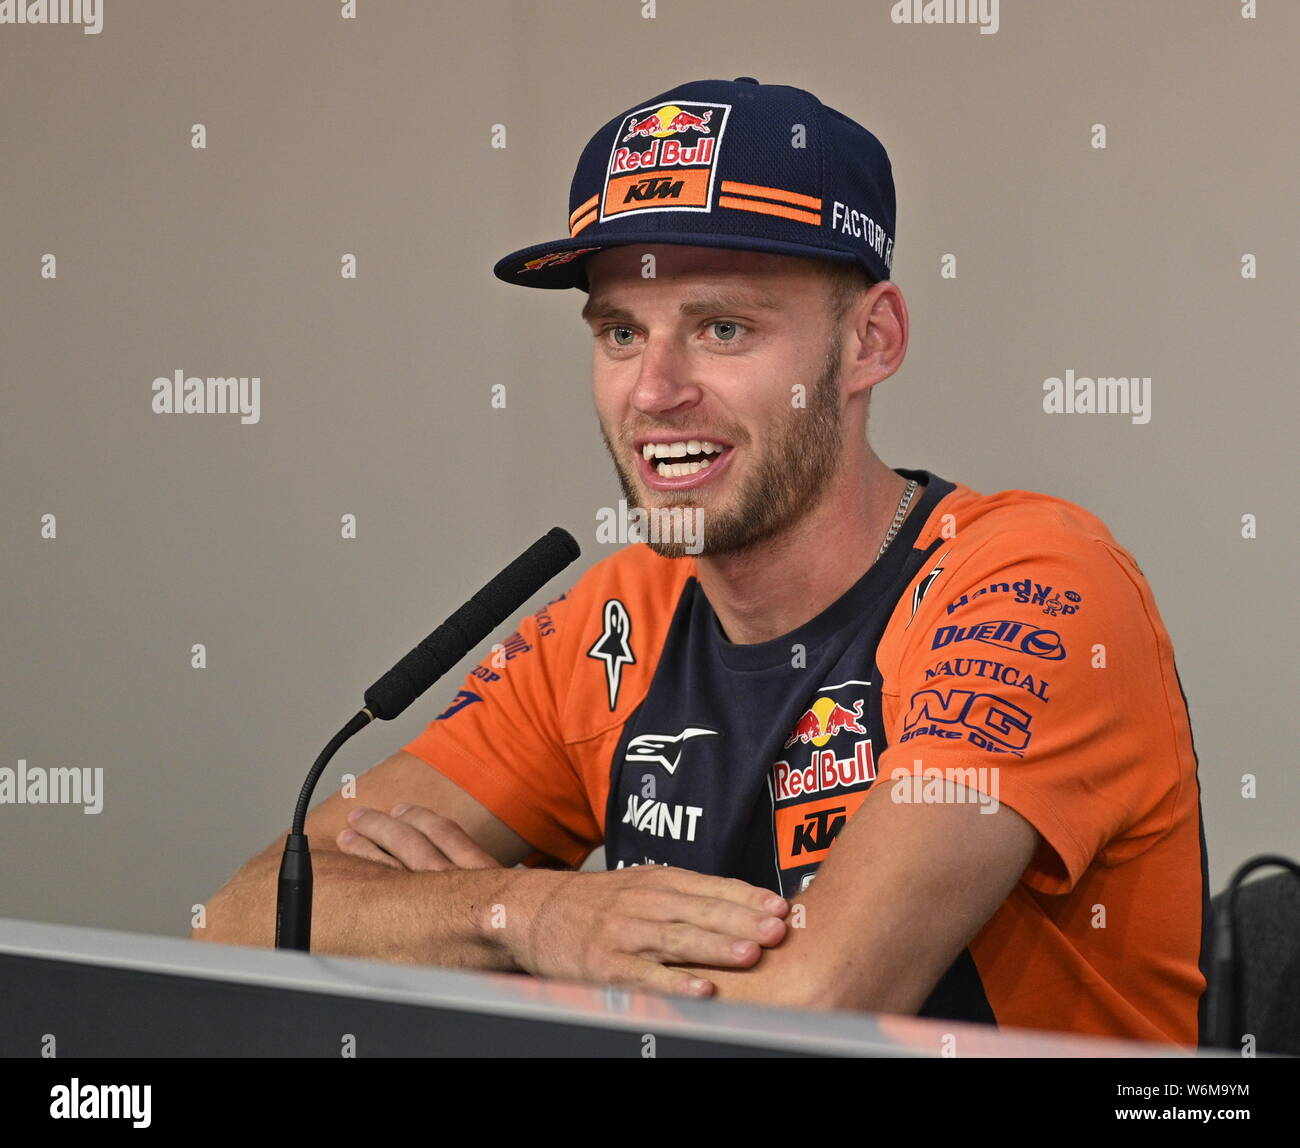 Brad Binder Of South Africa Motorcycle Road Racer Speaks During A Press Conference Prior To The Czech Grand Prix Motogp On August 1 2019 In Brno Stock Photo Alamy